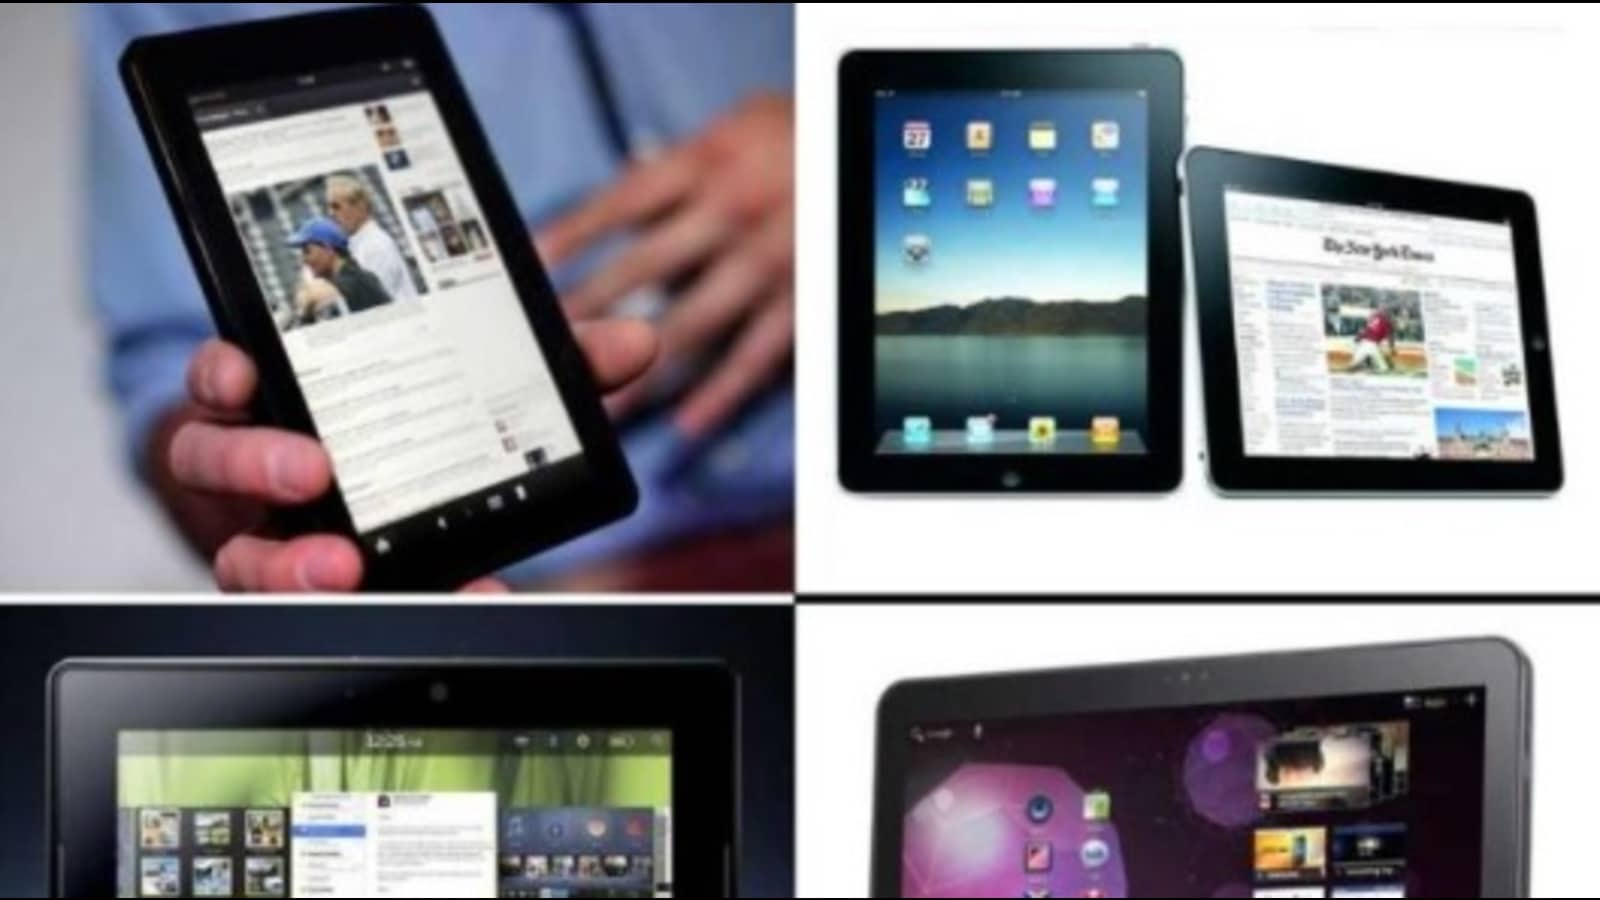 Distribution of tablets to higher education students in UP: process set in motion